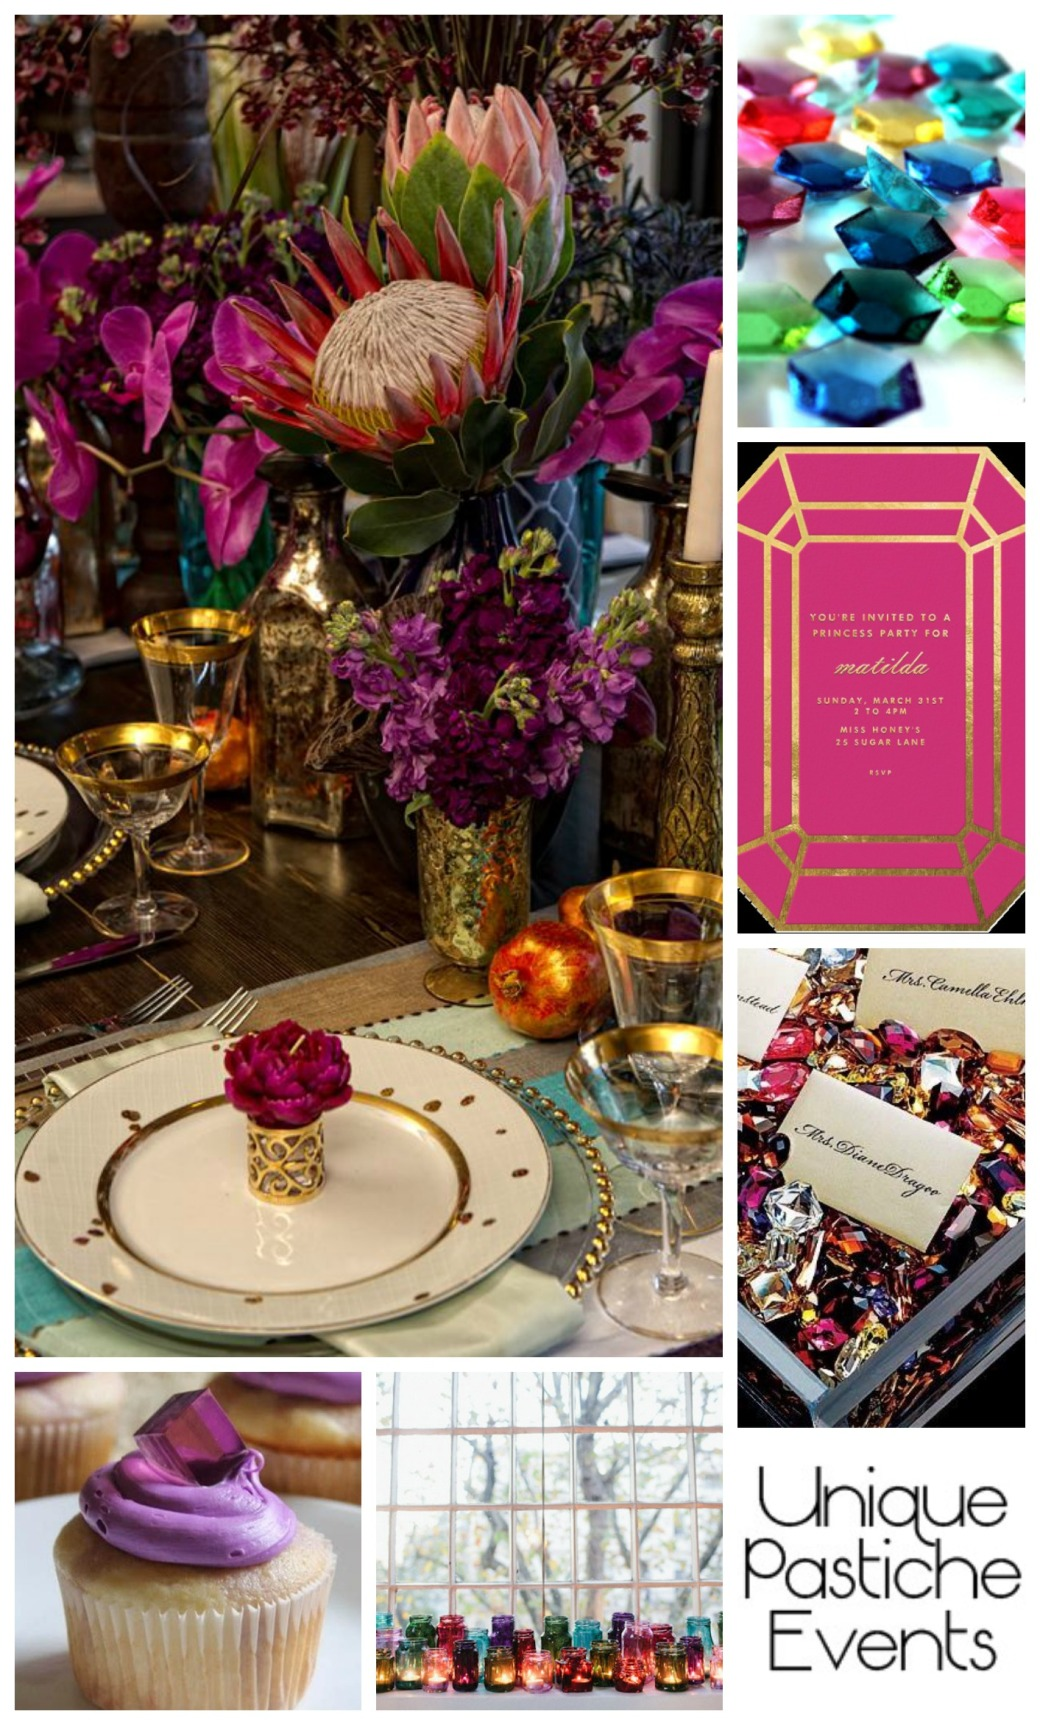 Luxurious Gem Themed Party + Celebration Ideas Enjoy the full post here: https://uniquepasticheevents.com/2015/06/03/luxurious-gem-themed-party-celebration-ideas/